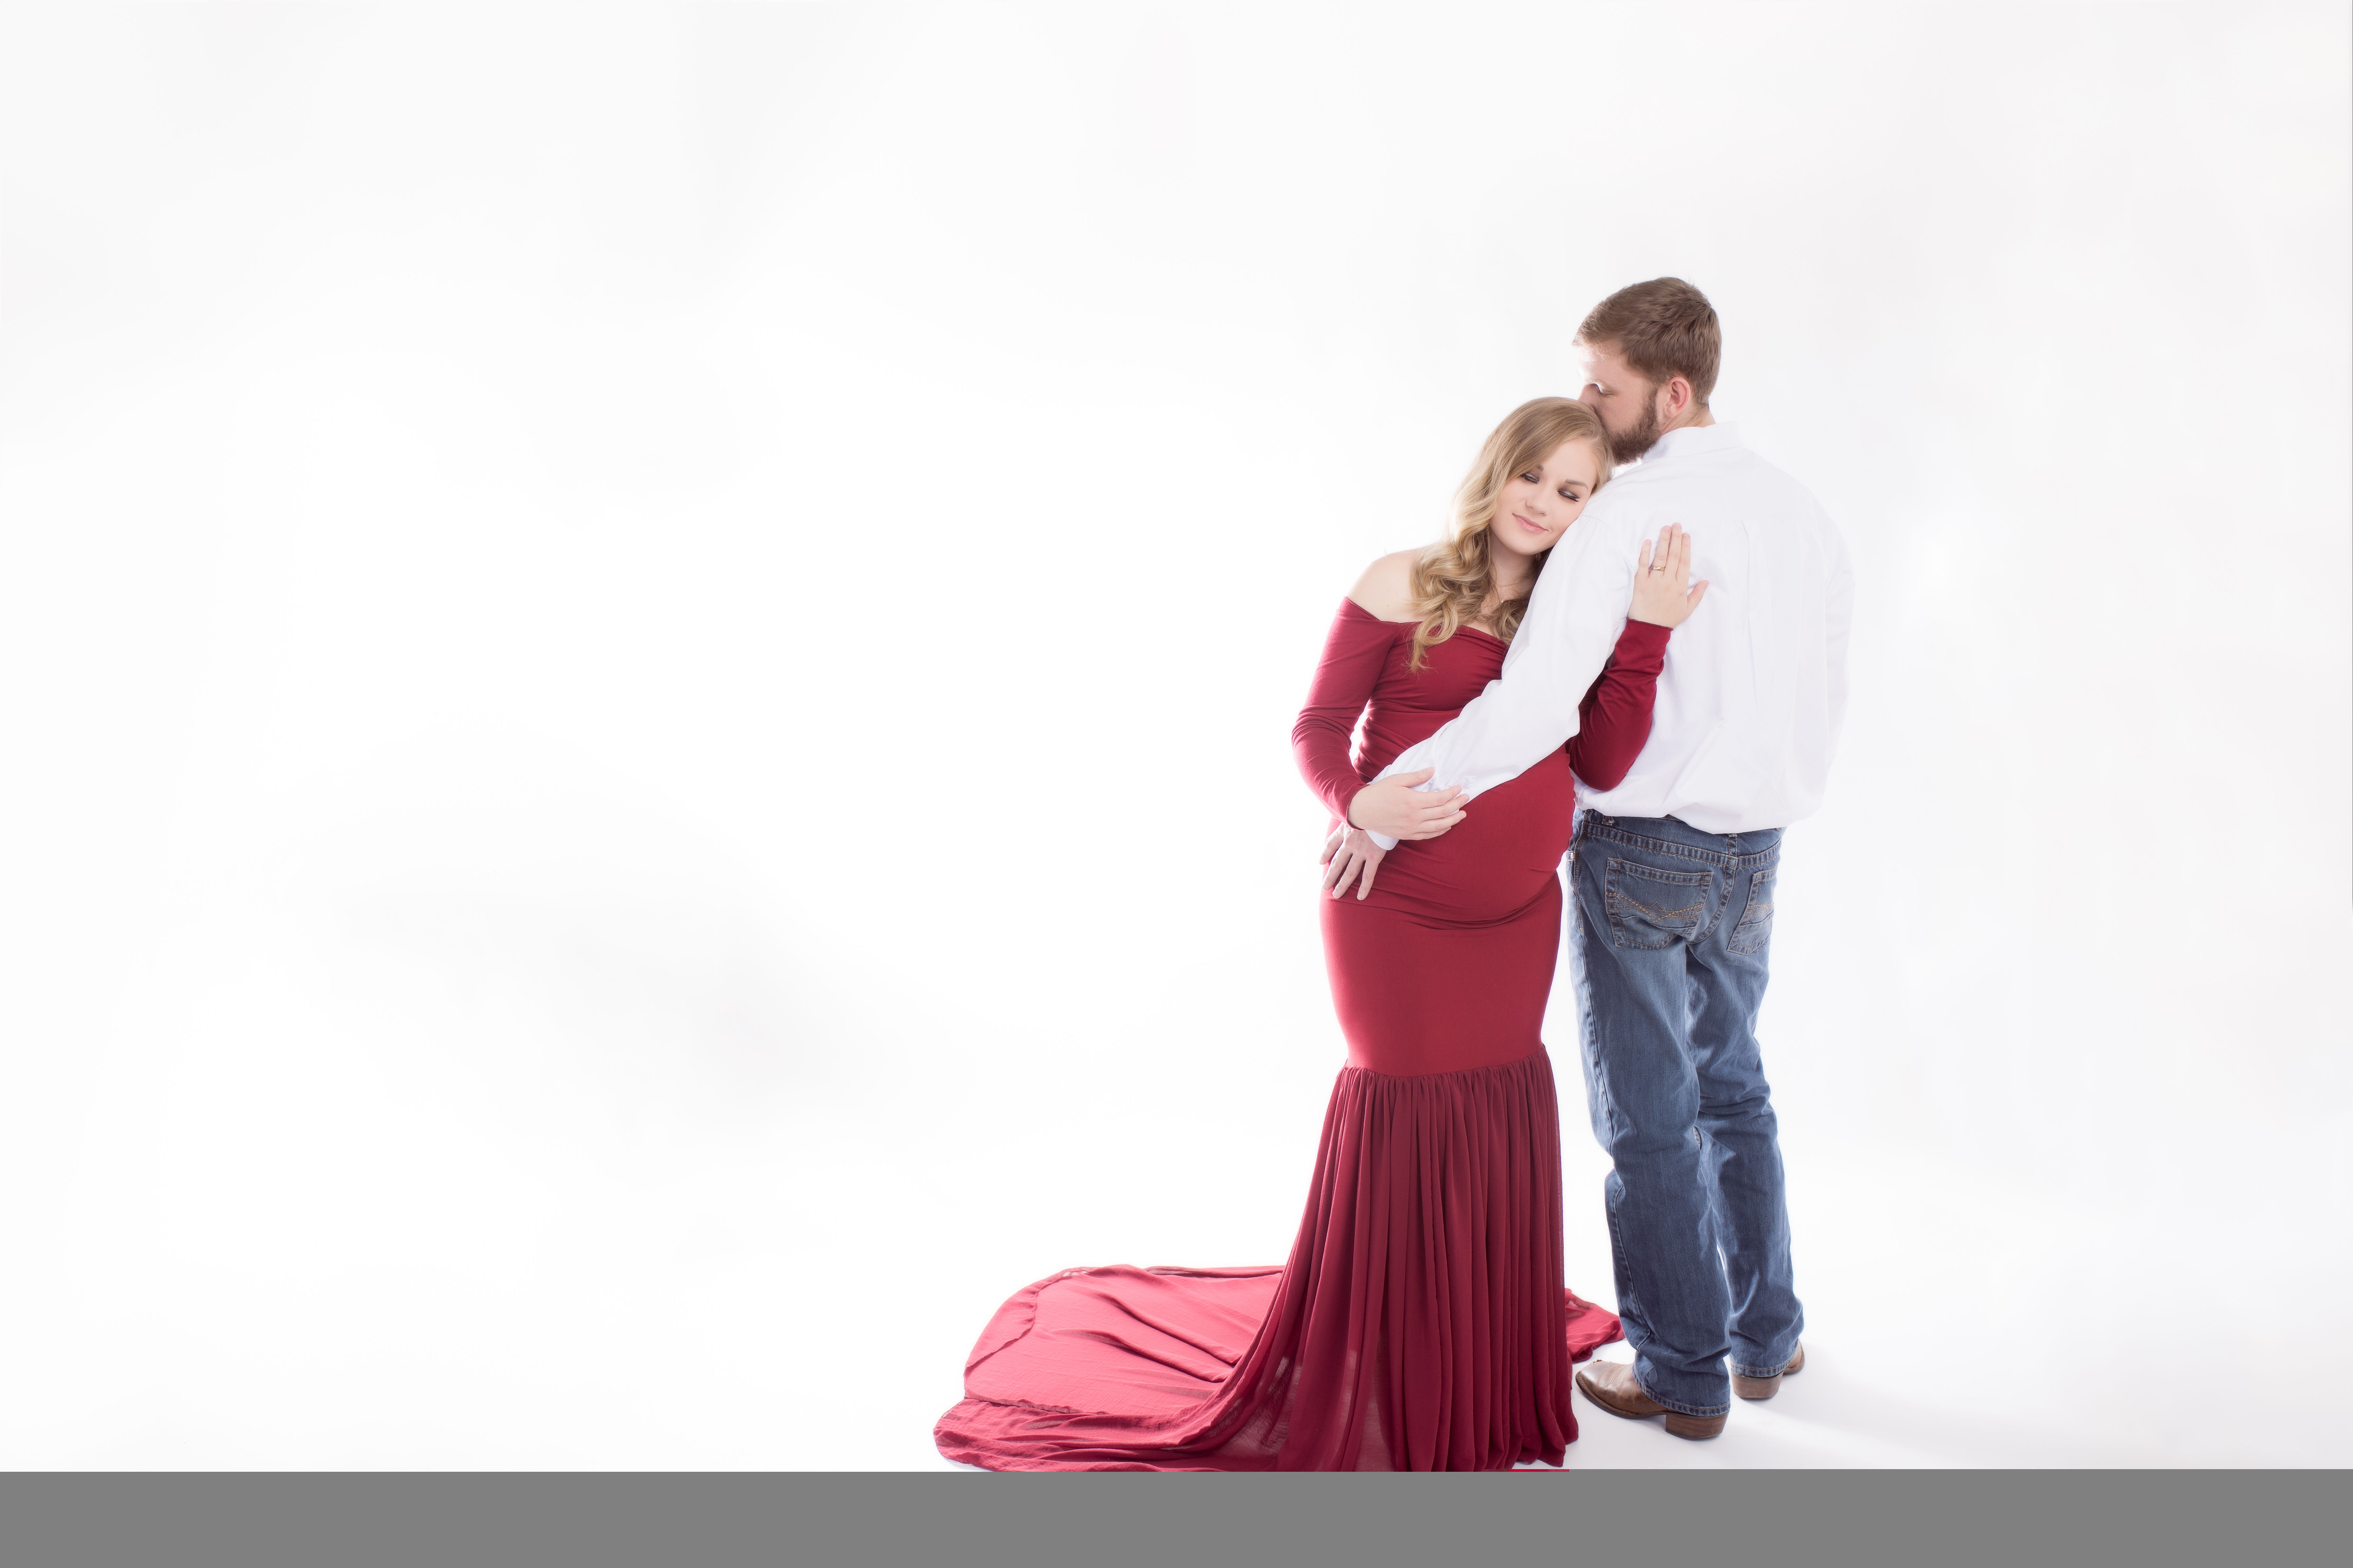 Ann Arbor Michigan Award Winning Maternity Photography Pregnancy Photographer--13